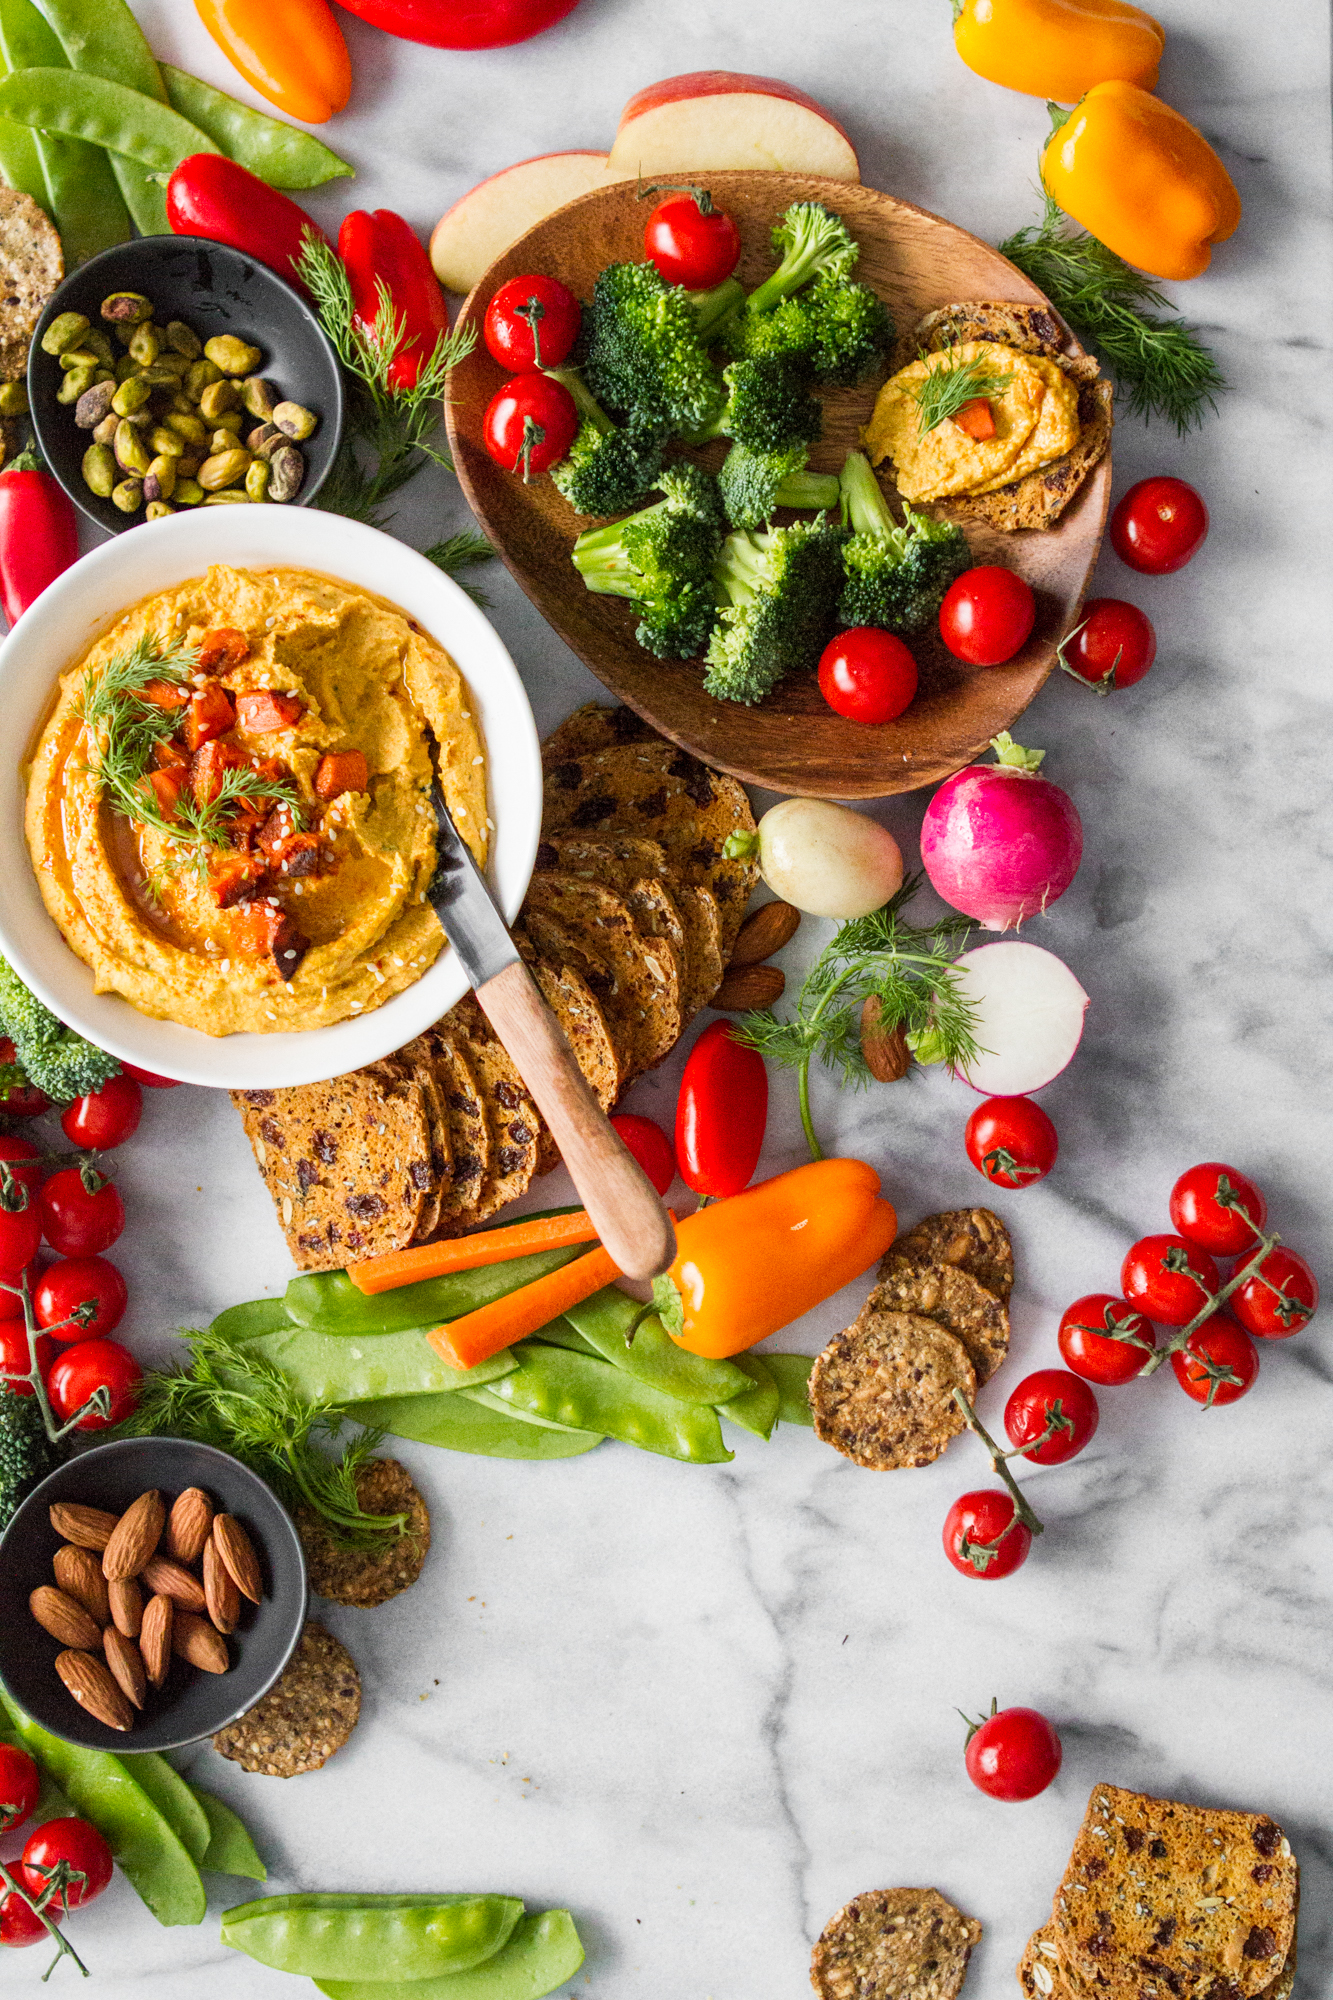 Roasted Carrot and Dill Hummus